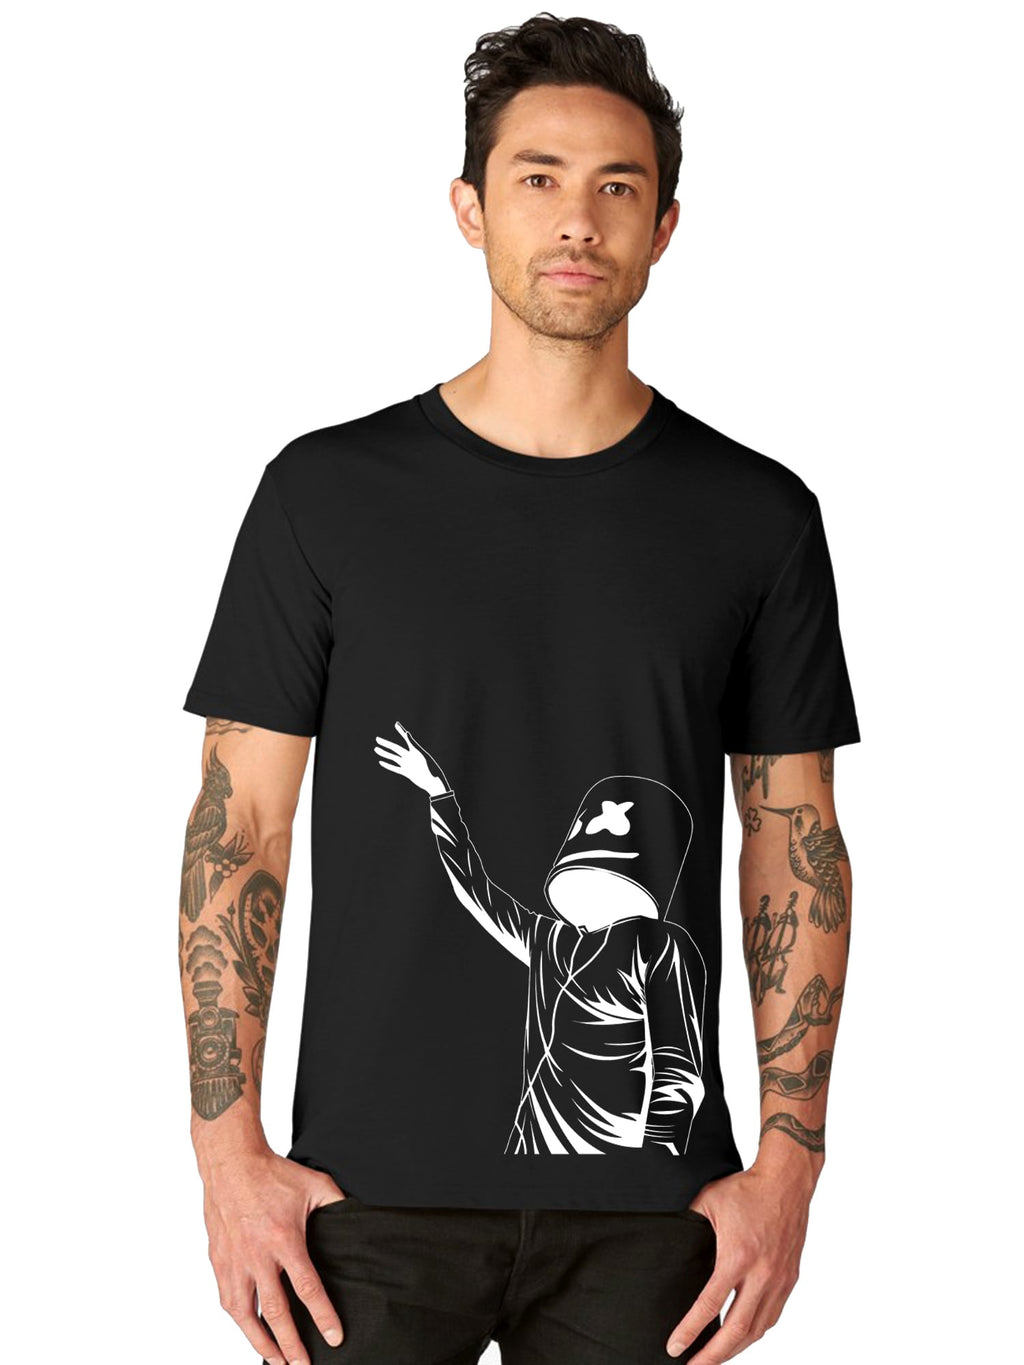 glow in dark Marshmello t shirt